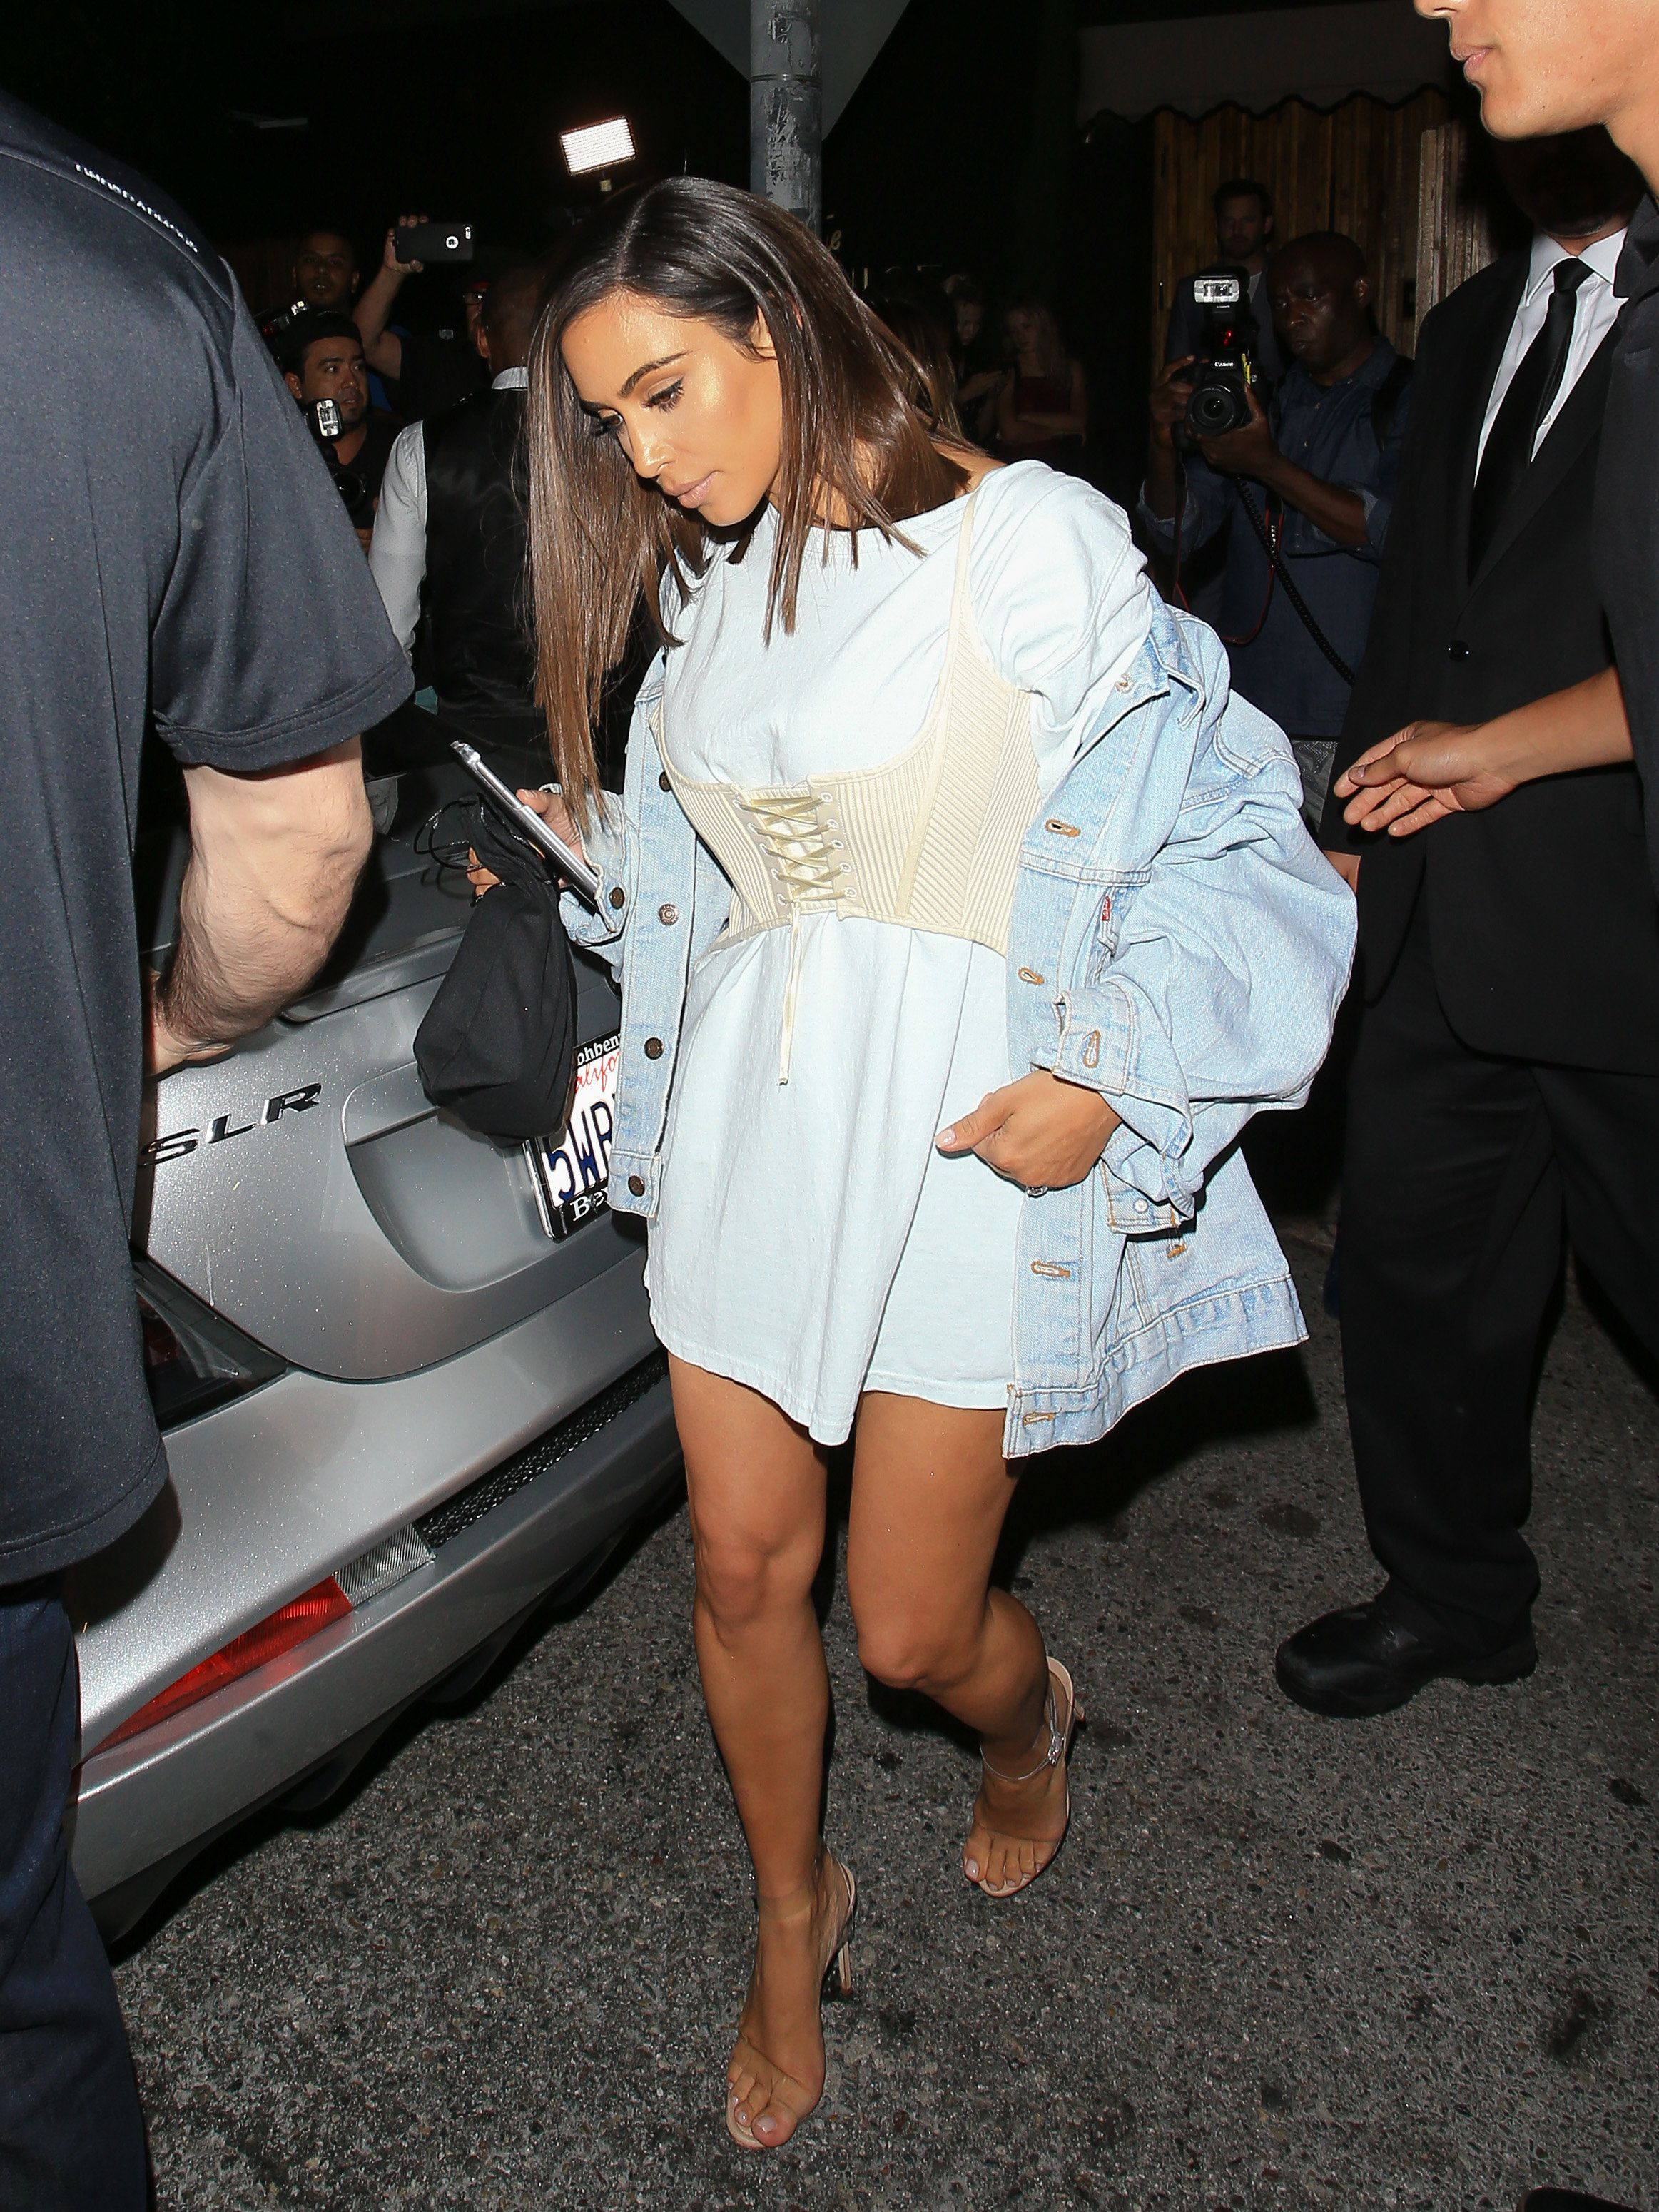 LOS ANGELES, CA - AUGUST 01: Kim Kardashian is seen on August 01, 2016 in Los Angeles, California.  (Photo by BG001/Bauer-Griffin/GC Images)